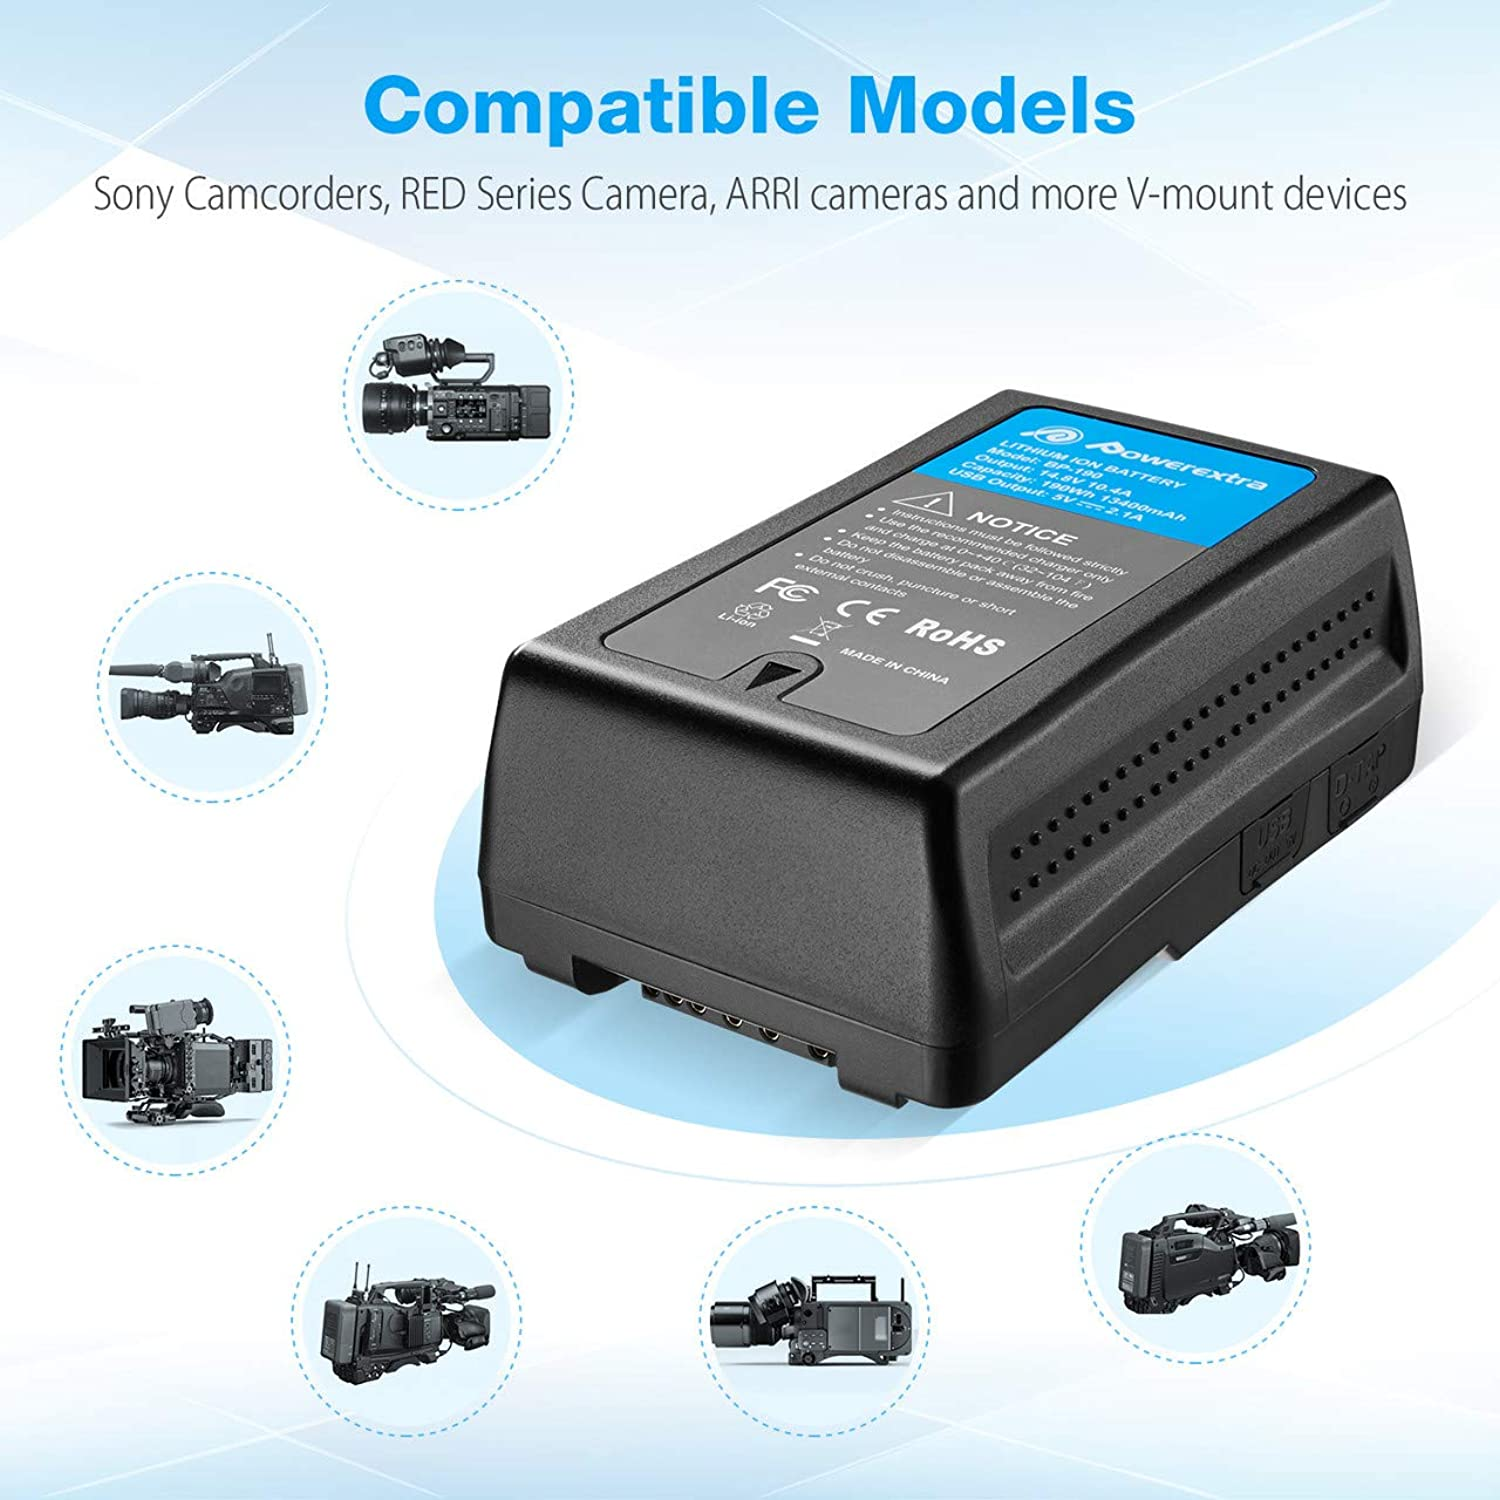 Replacement V Mount//V-Lock Battery Compatible with Sony Camera Camcorder Broadcast Replacement Brick for DSLR BP-190WS Newmowa 190Wh 13200mAh